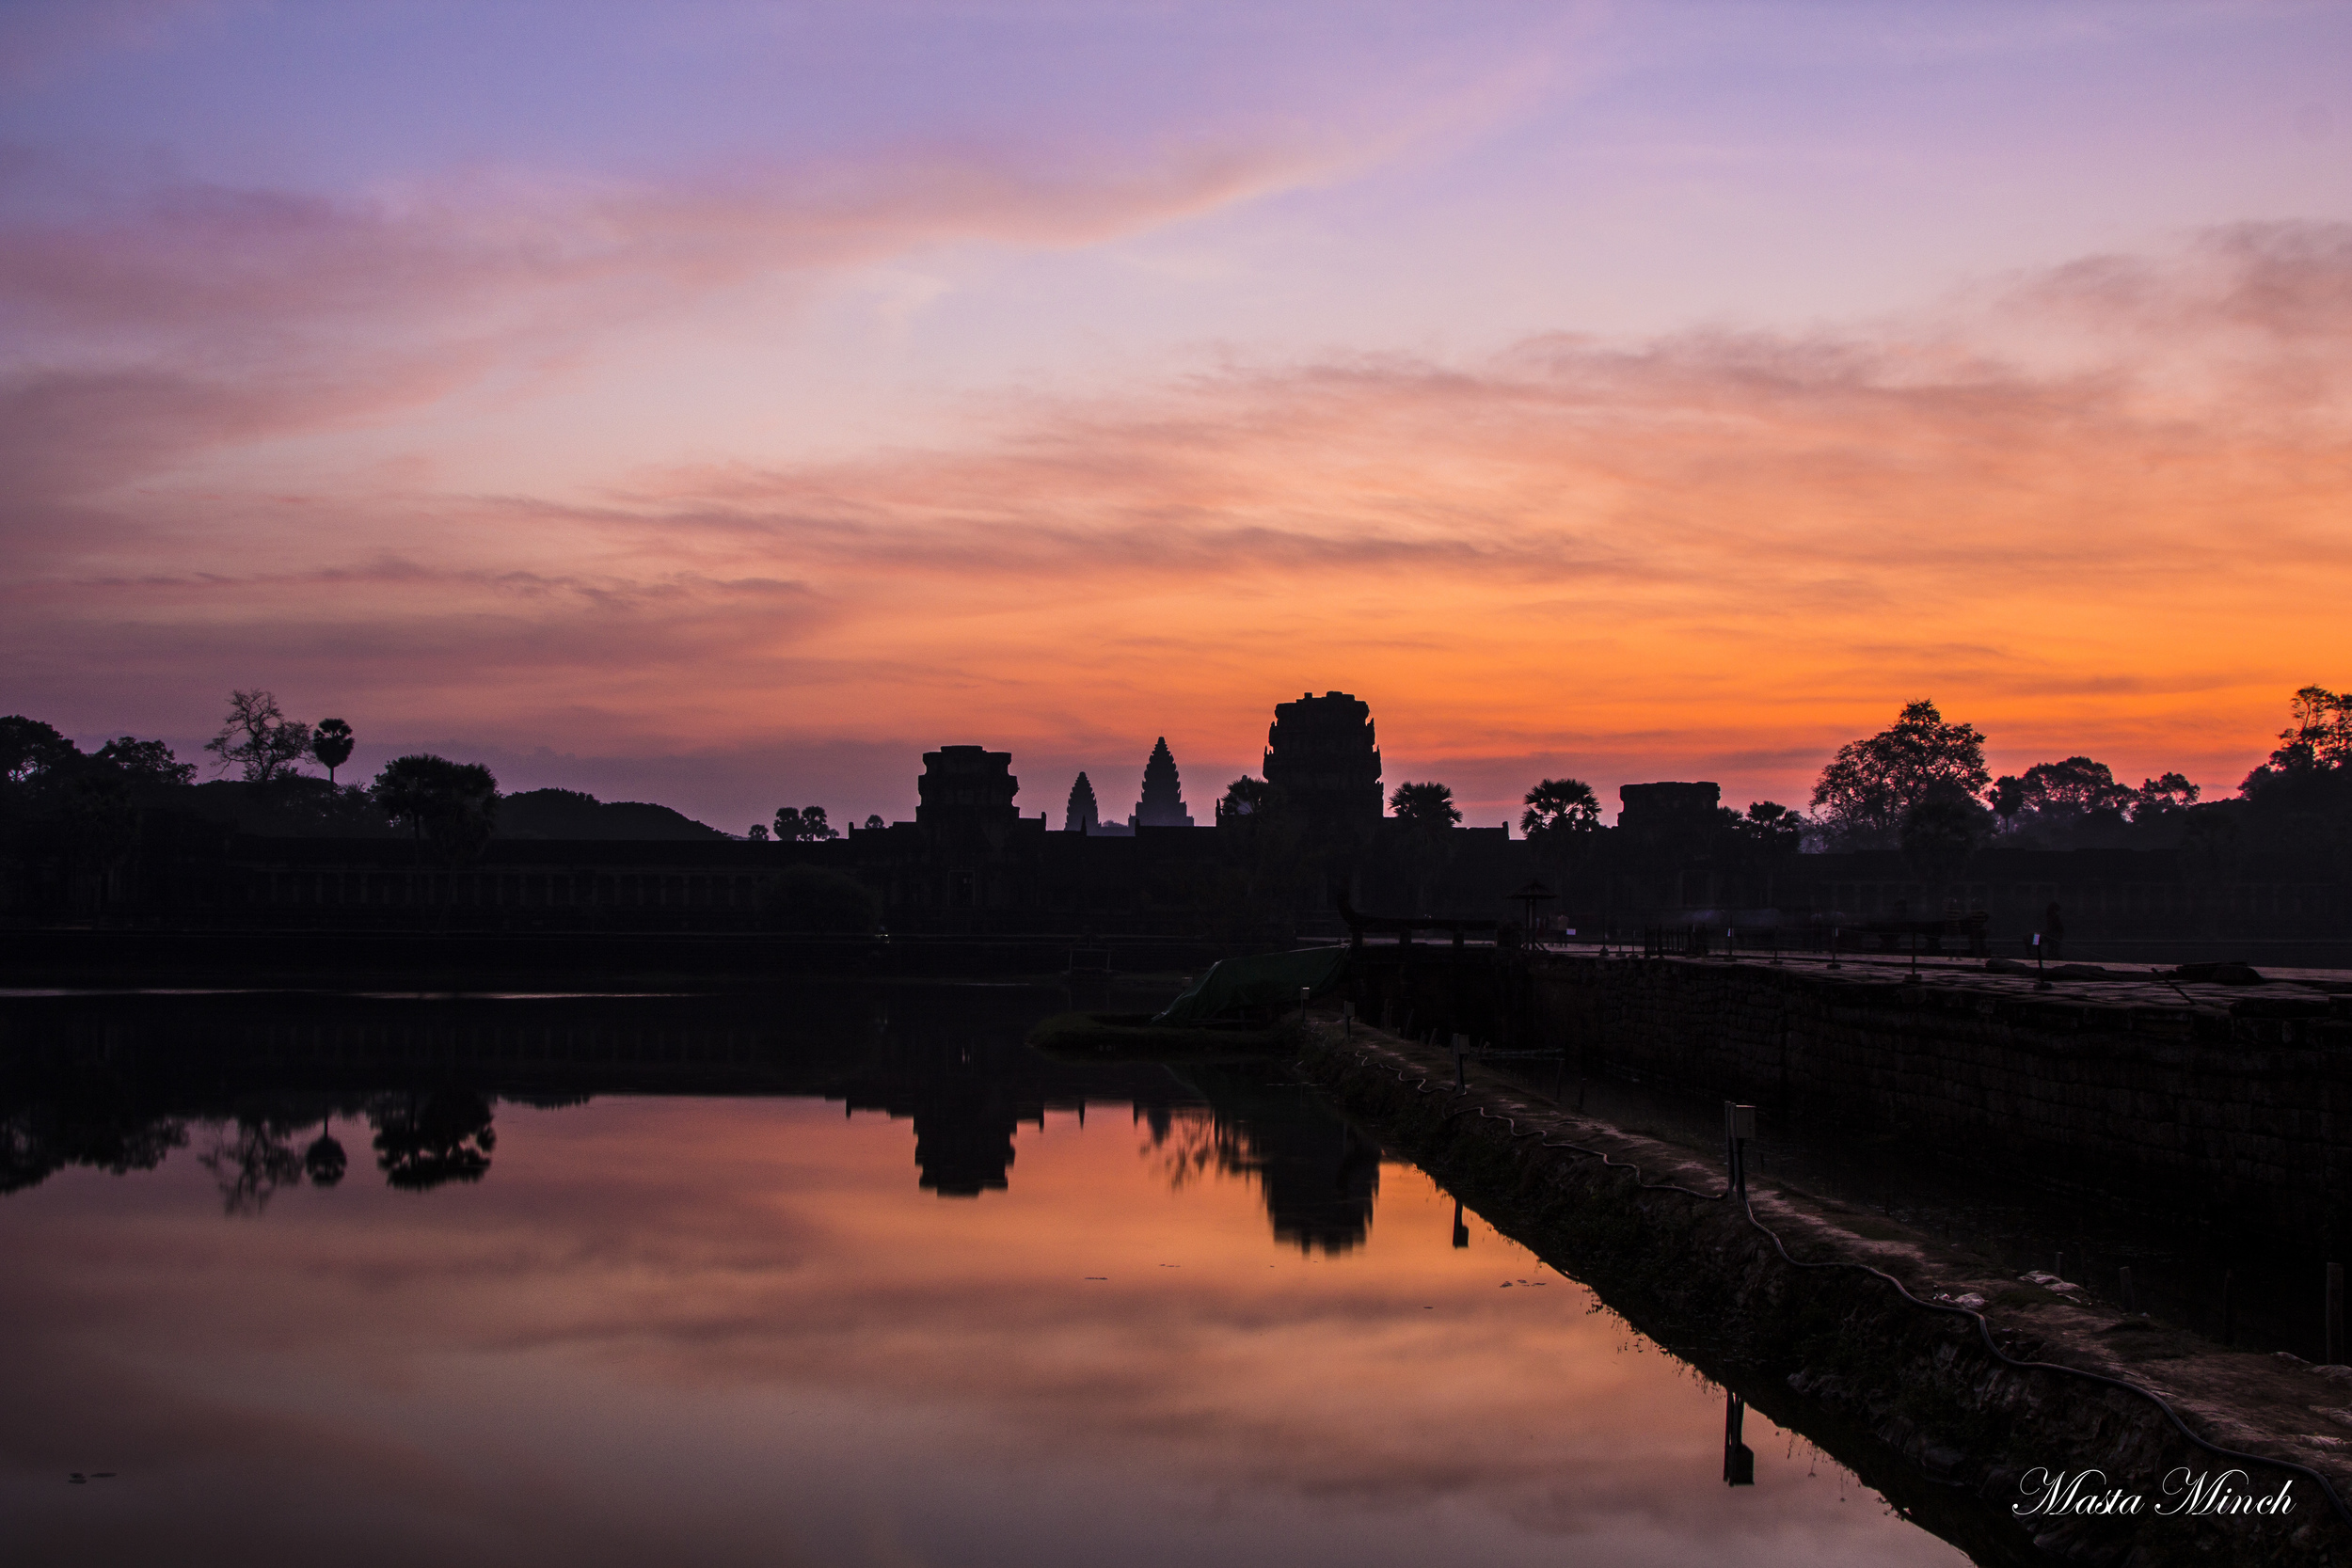 The amazing view of Angkor Wat in the early morning sun at 5:00AM